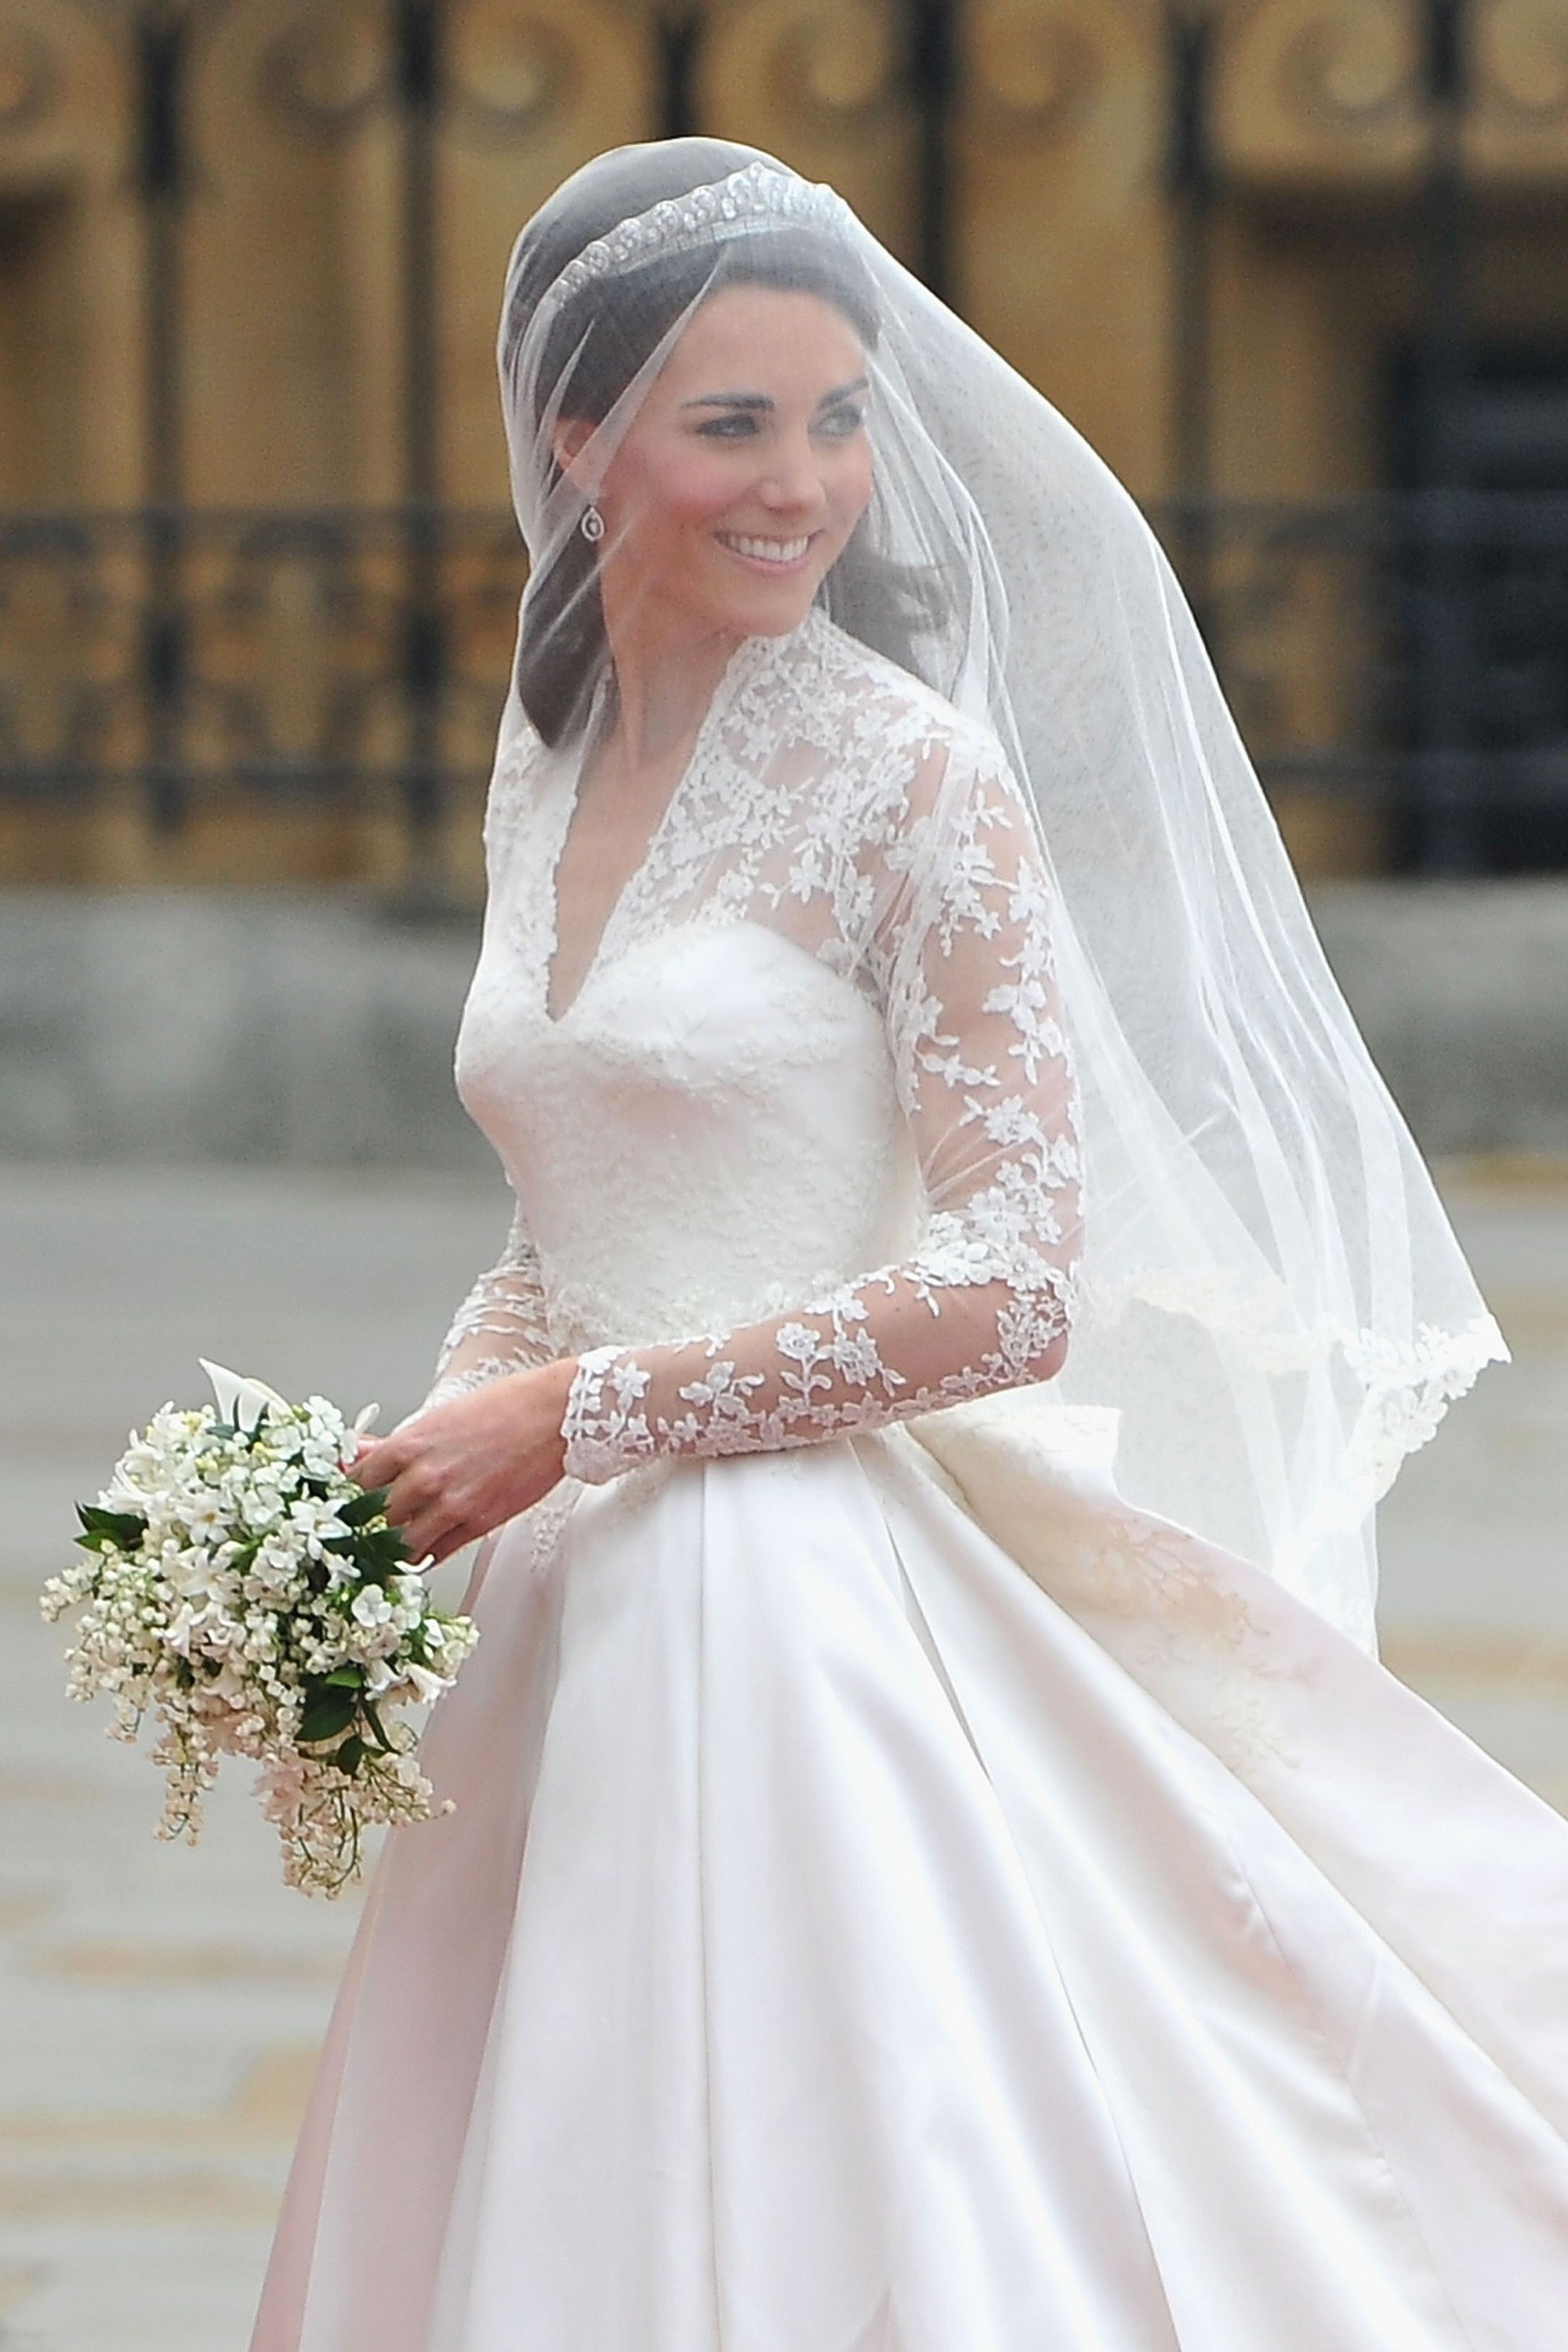 A Replica of Kate Middleton Wedding Dress Is Selling at HM for 299 A Replica of Kate Middleton Wedding Dress Is Selling at HM for 299 new images